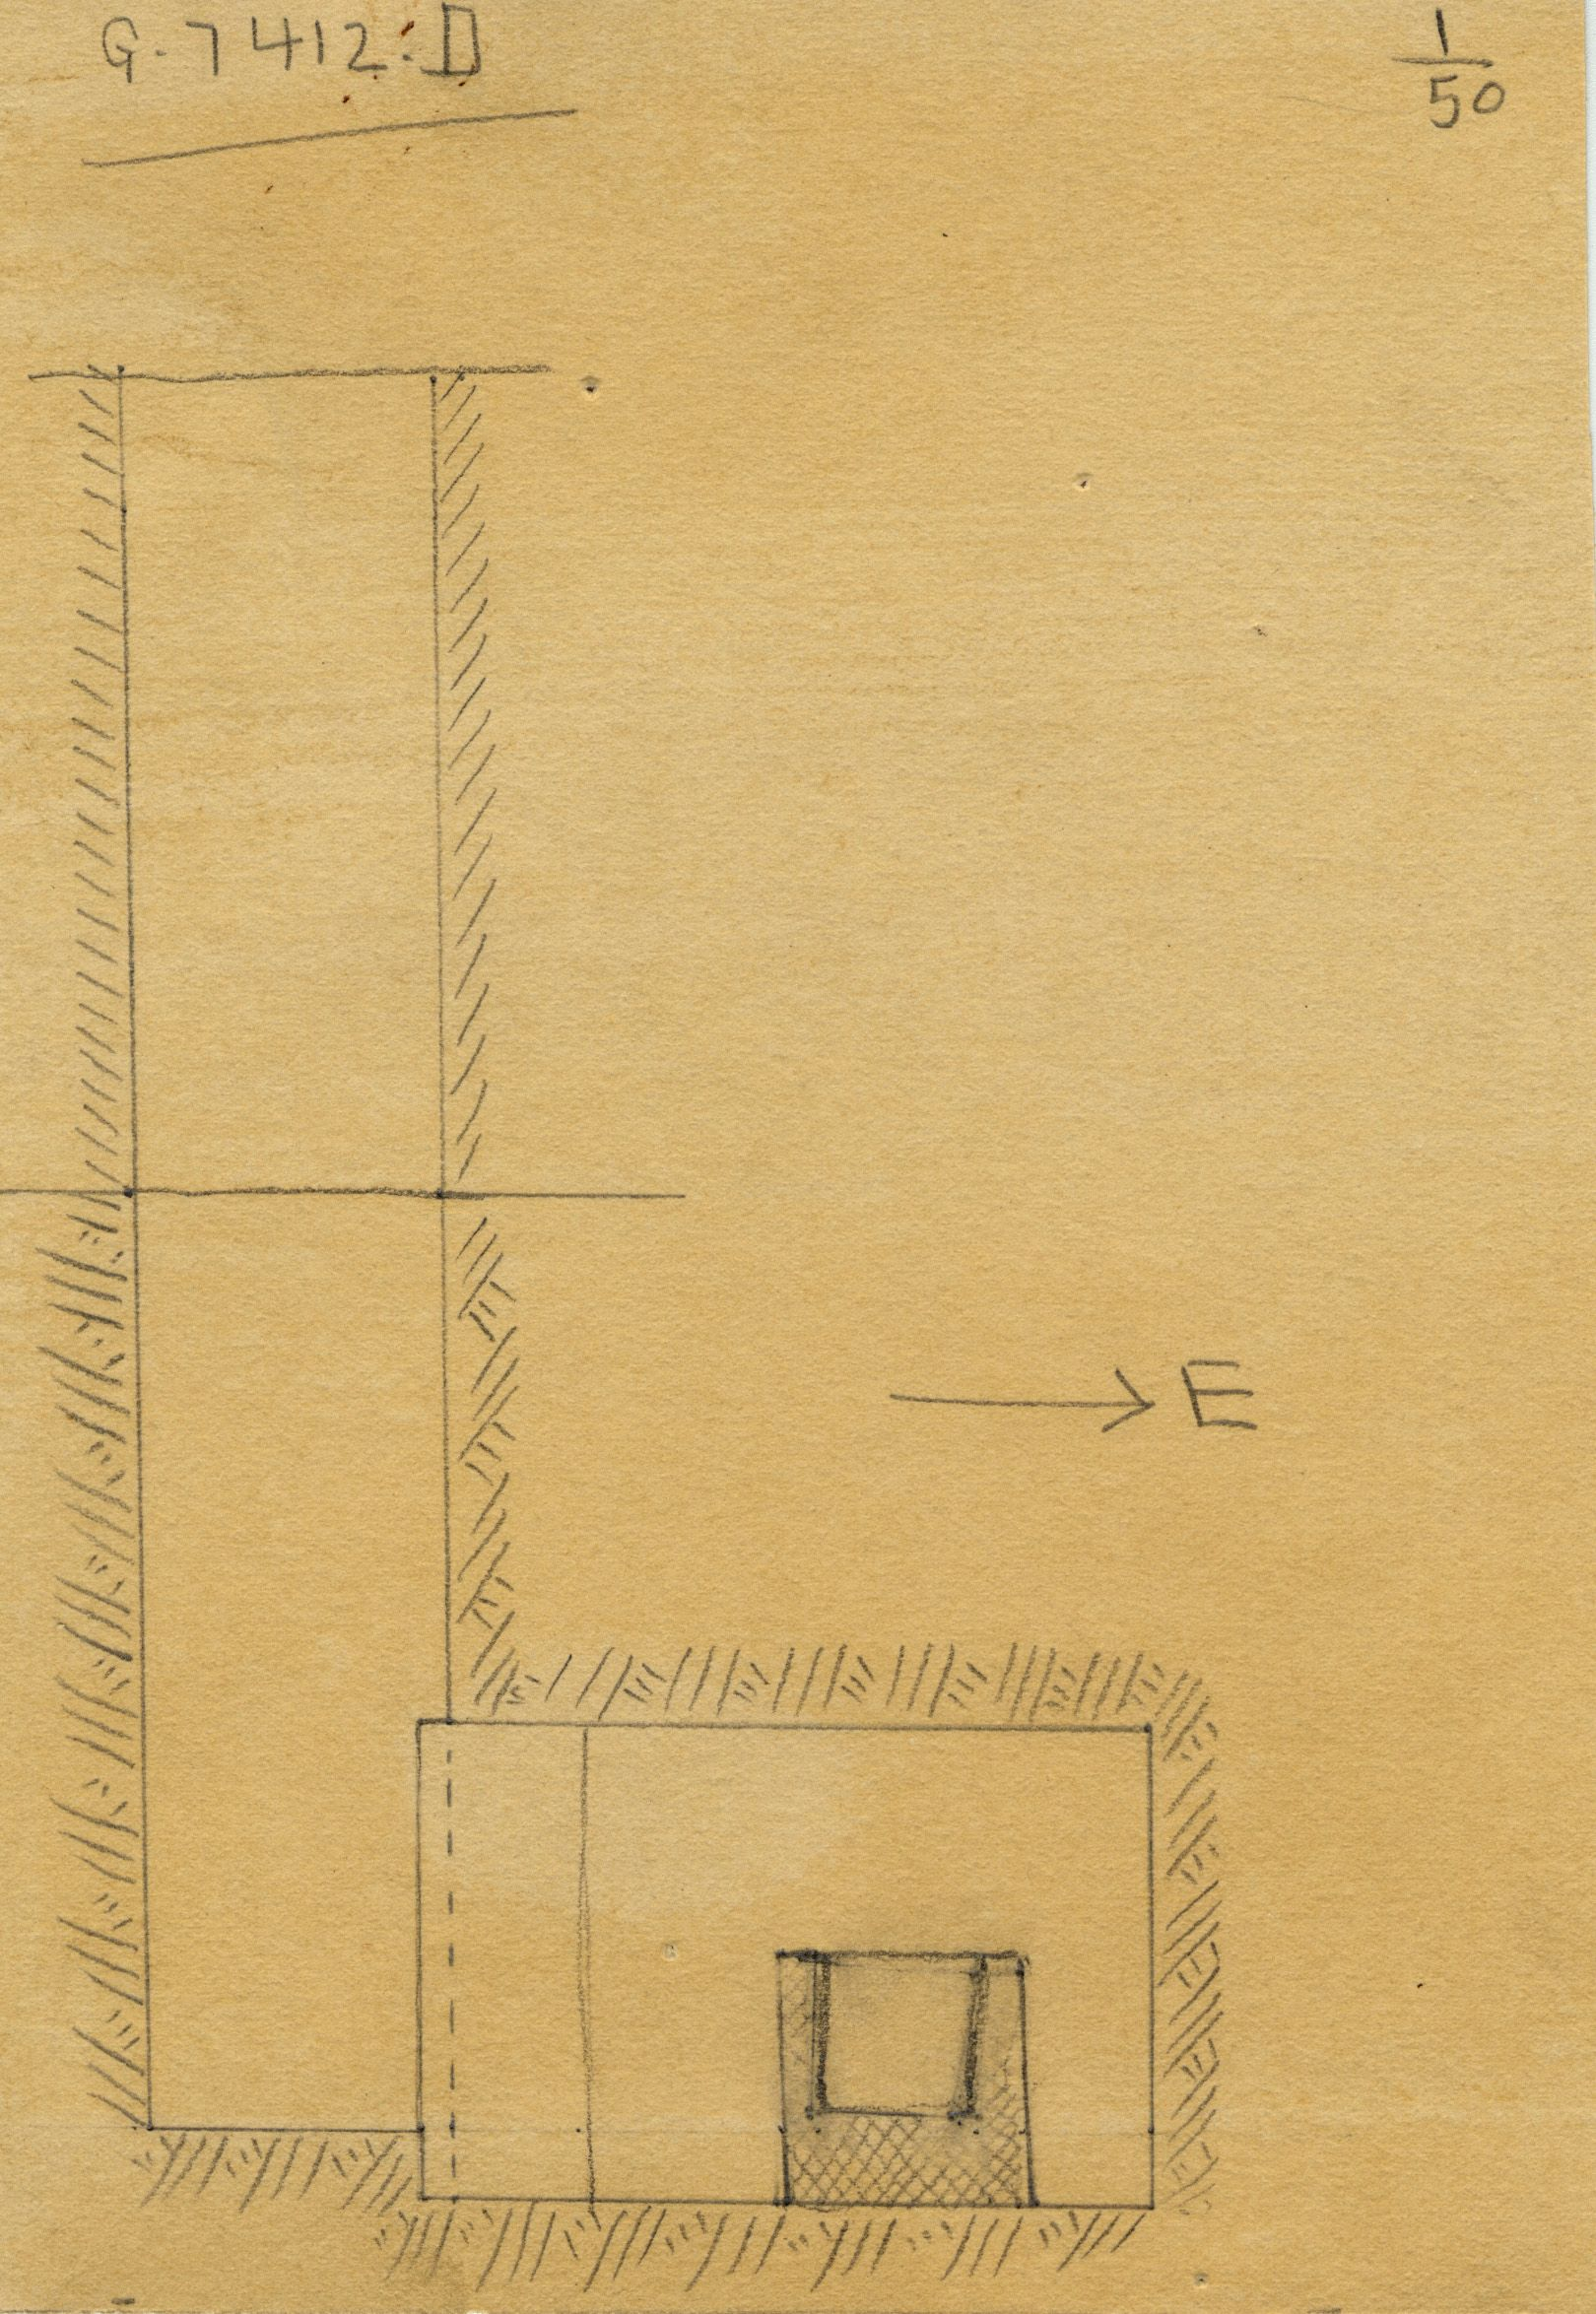 Maps and plans: G 7412, Shaft D